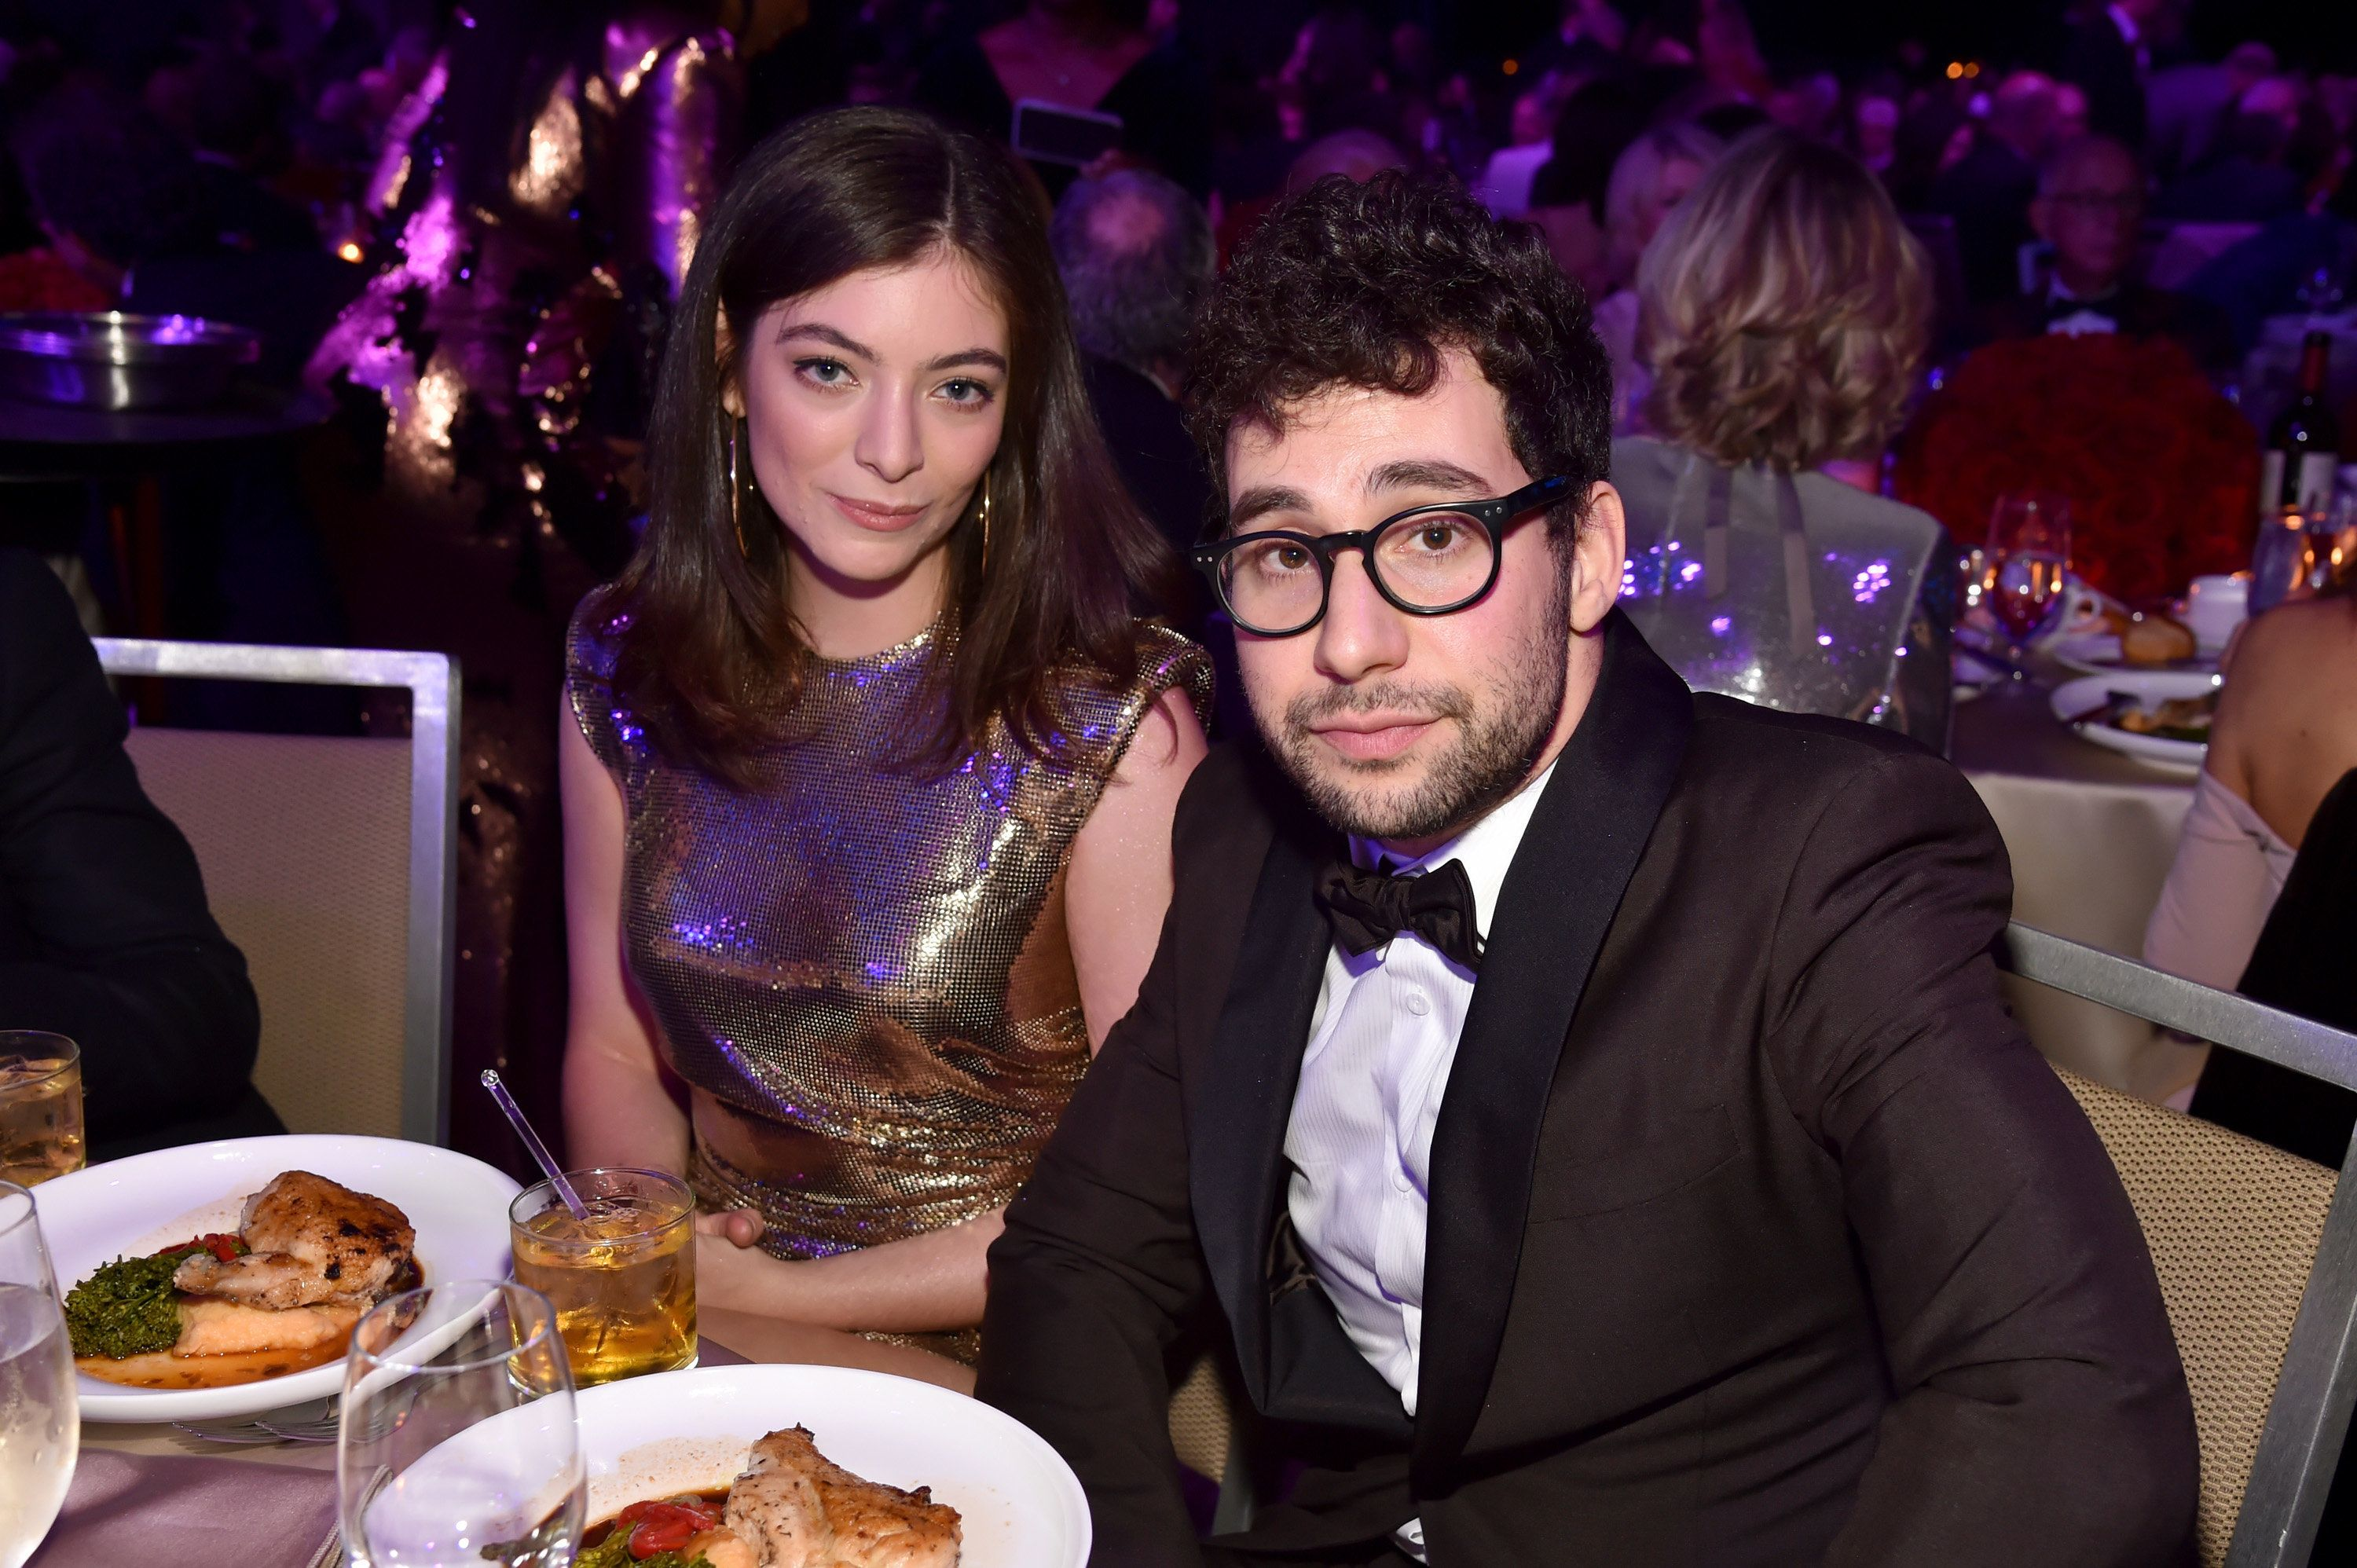 Lorde dating who